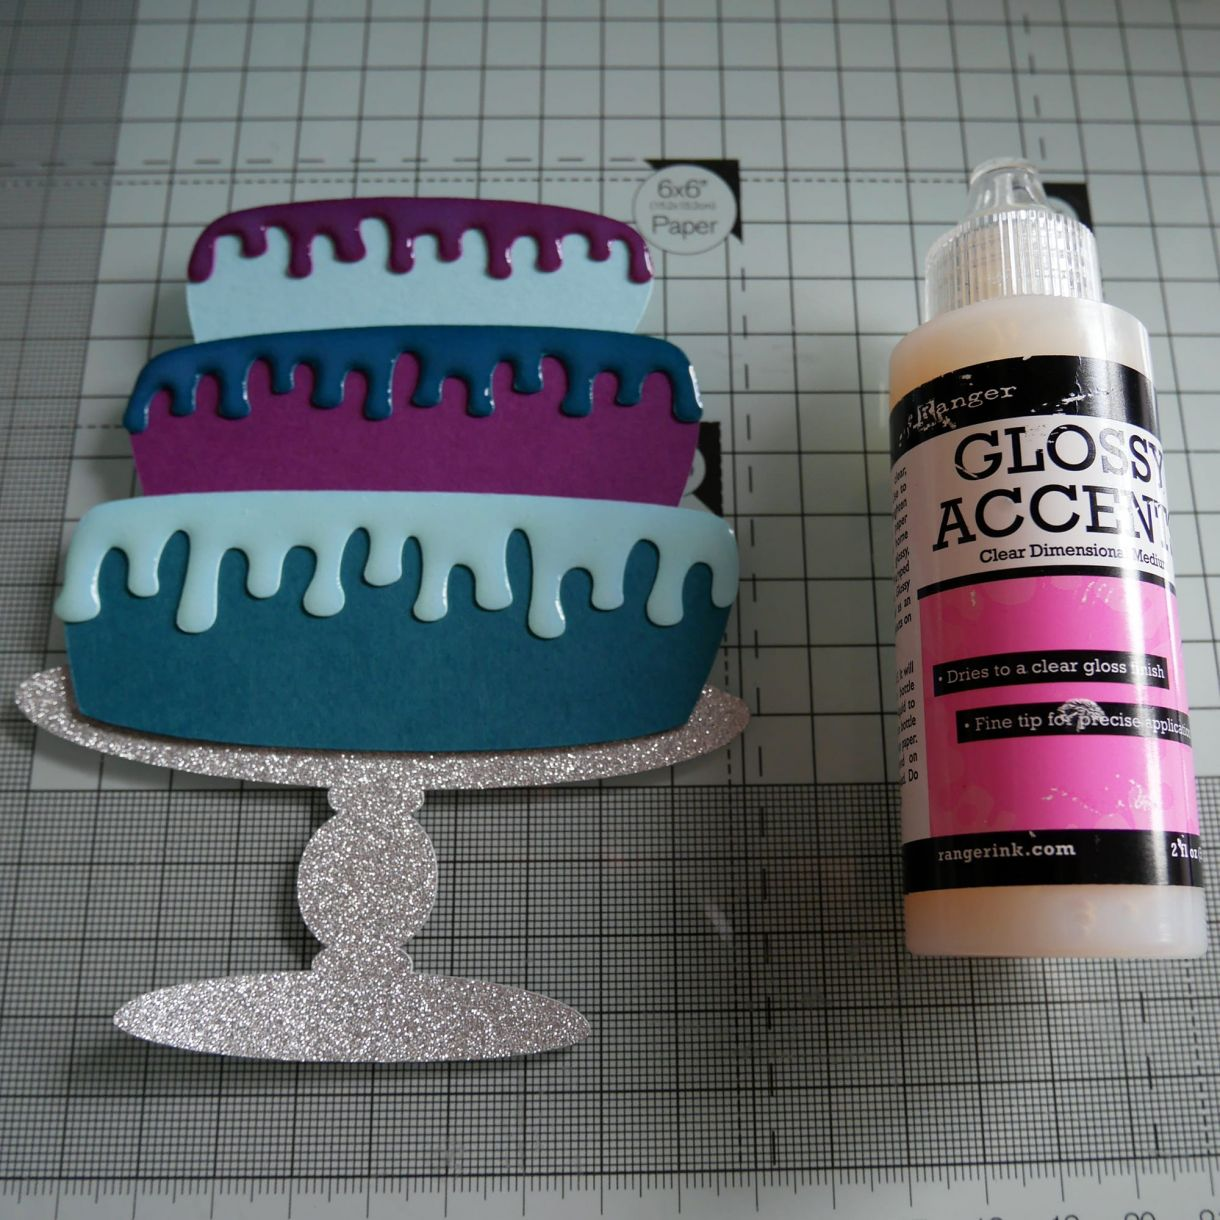 Layered Cake Bday Card Nicole 6